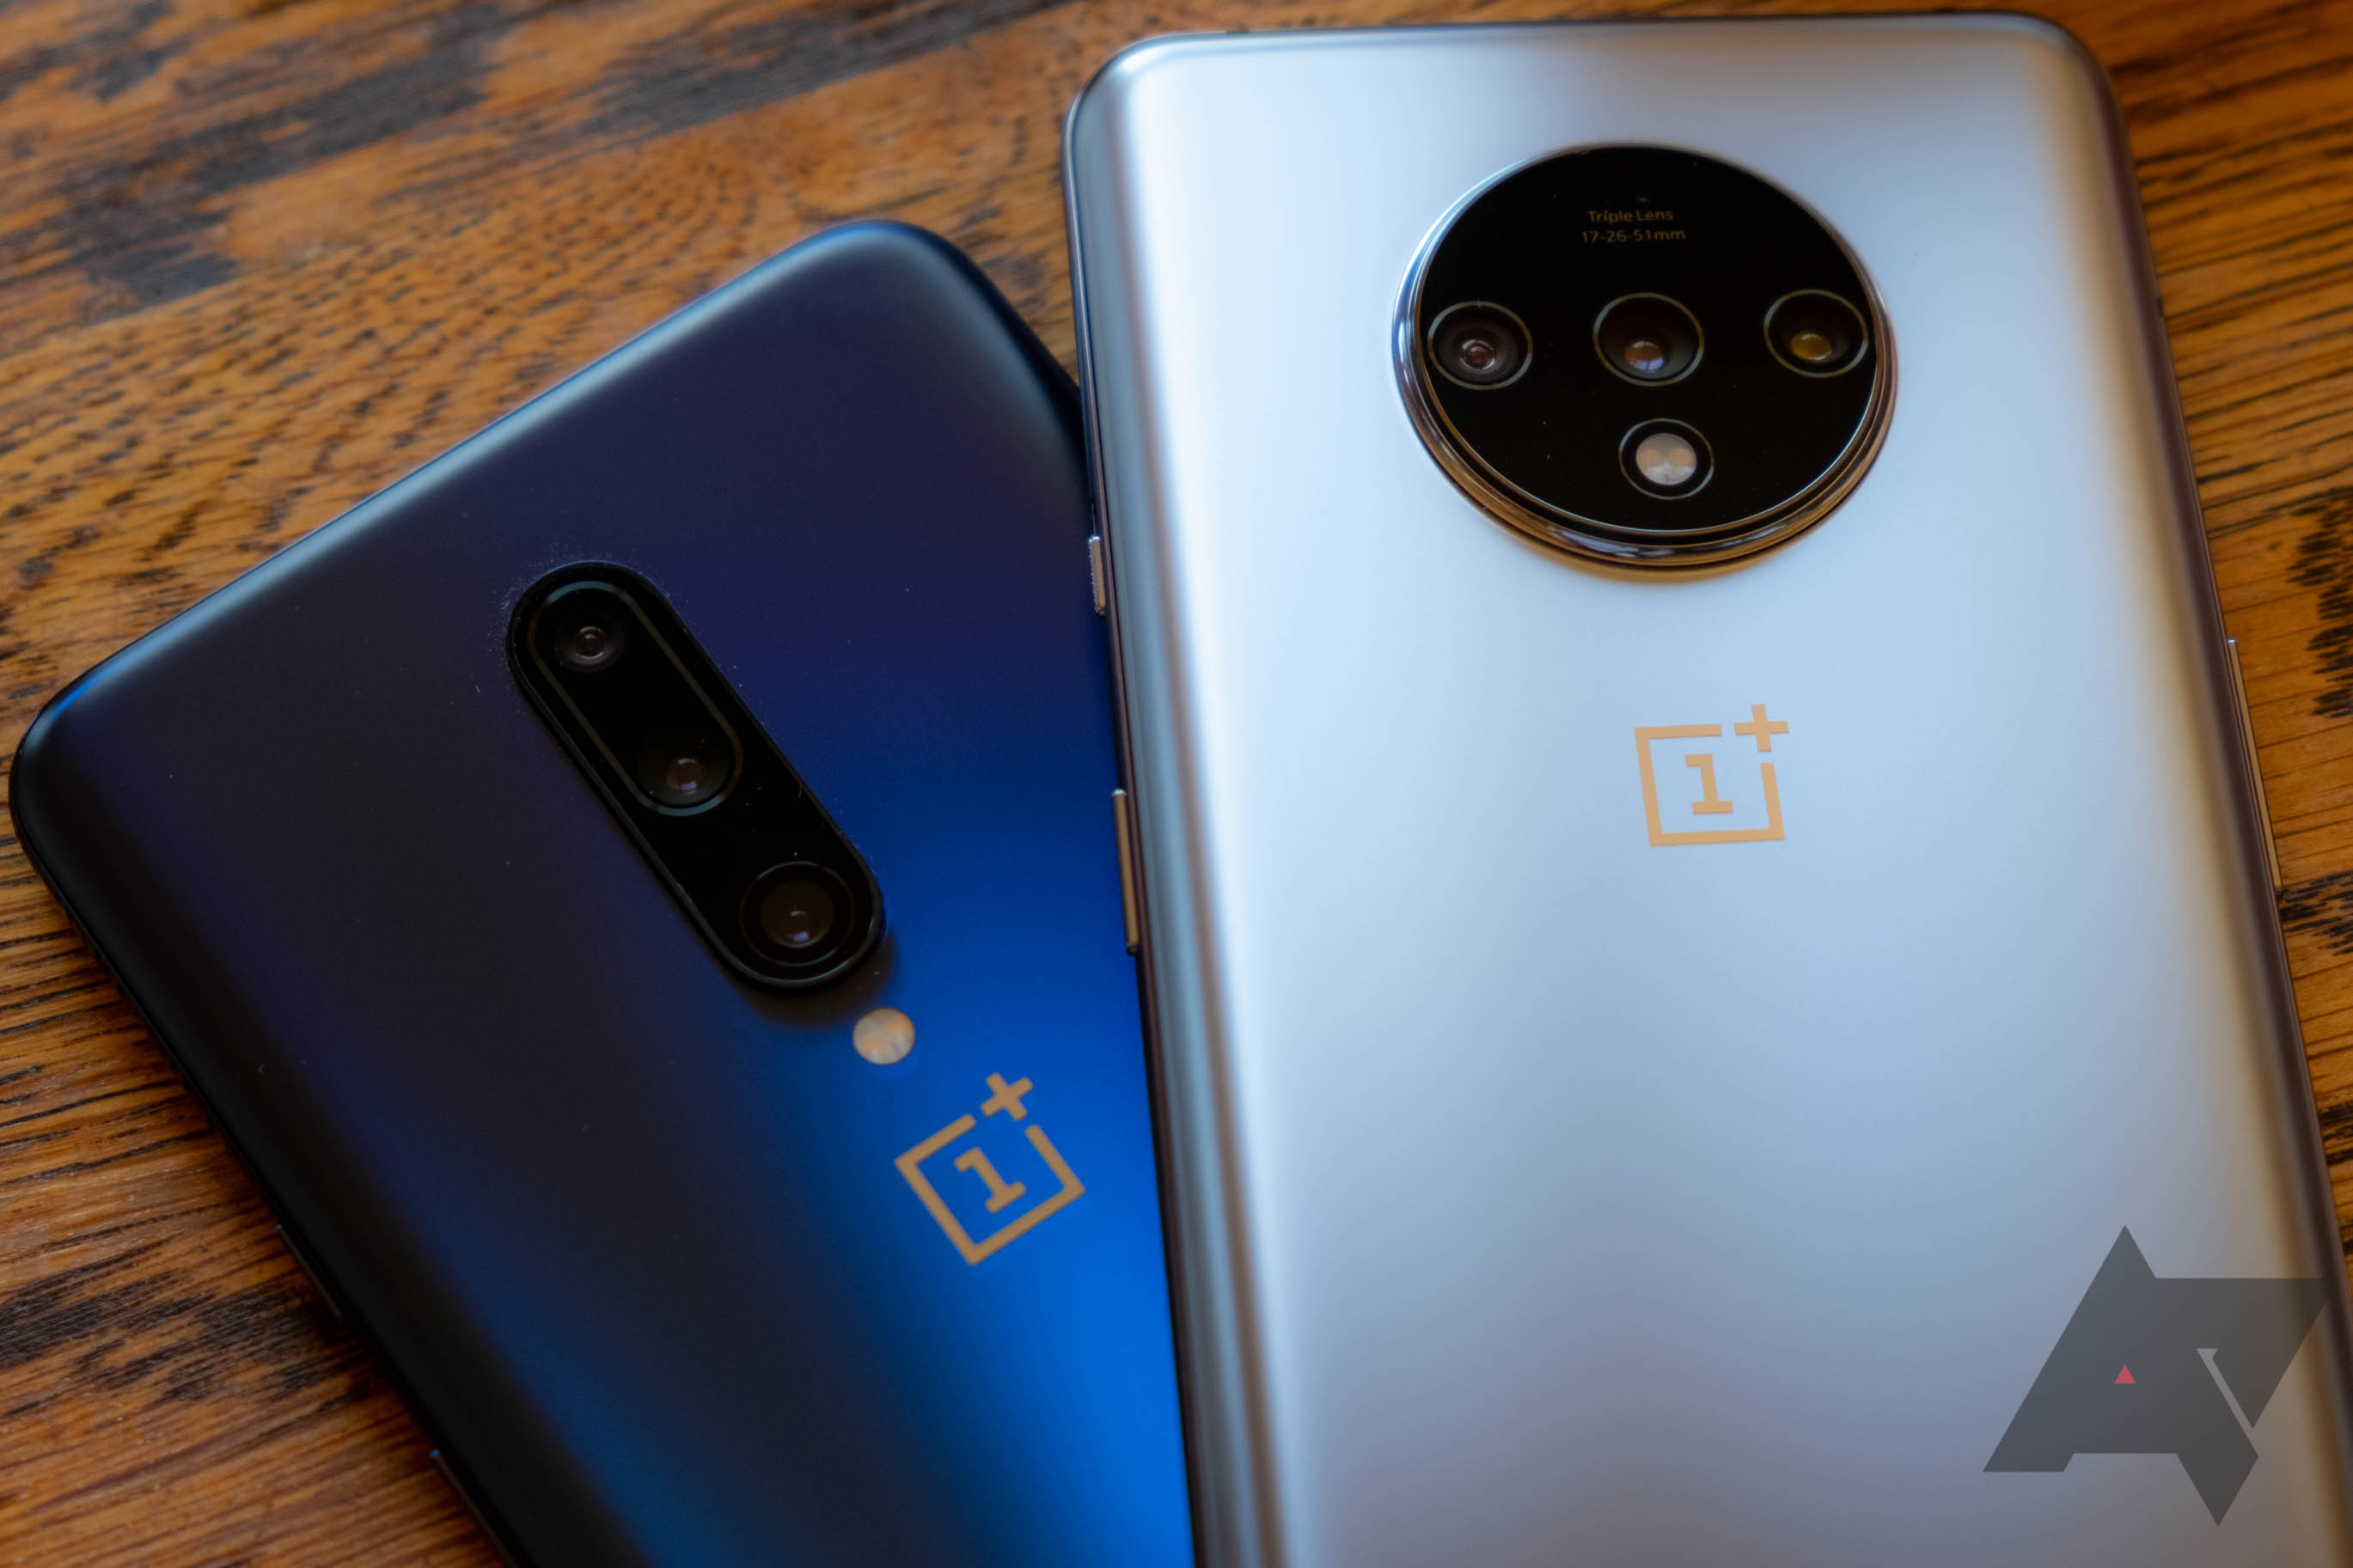 OnePlus security breach exposes personal info